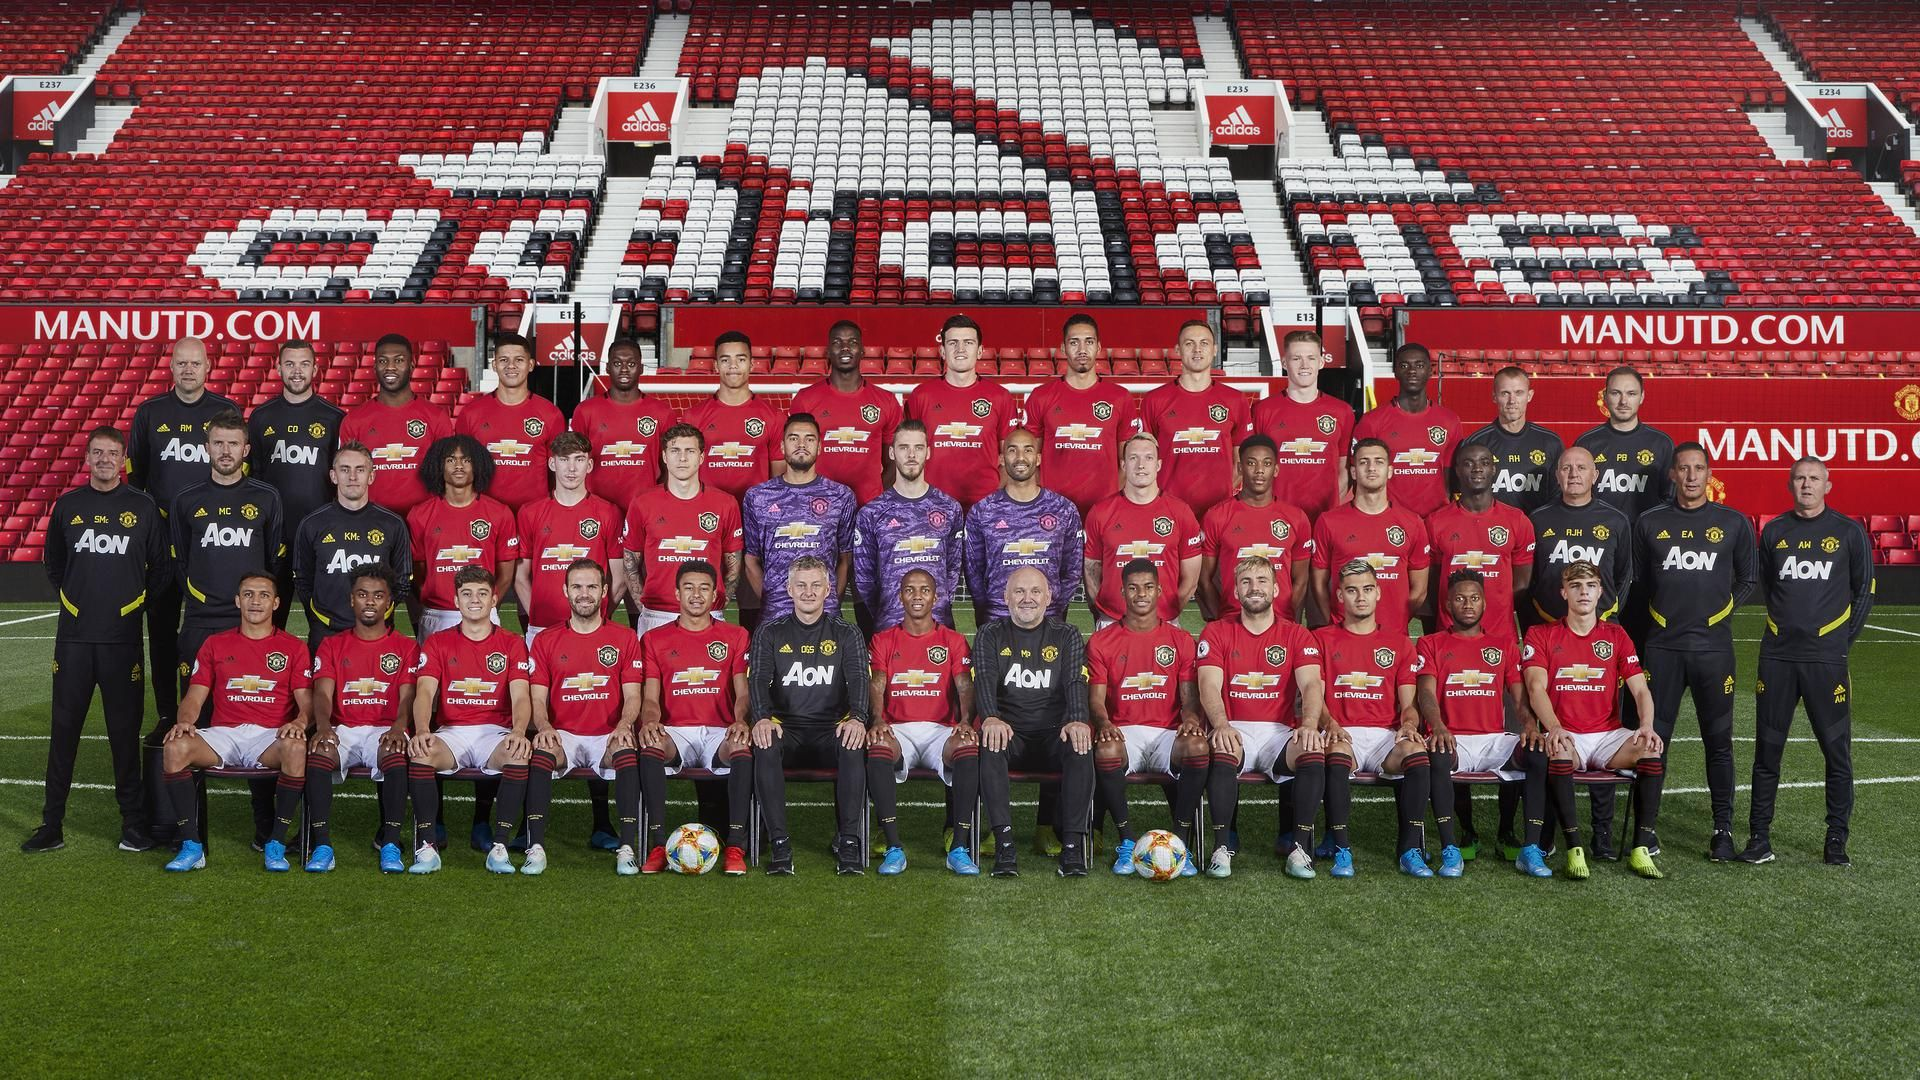 manchester united squad 2020 desktop wallpapers wallpaper cave manchester united squad 2020 desktop